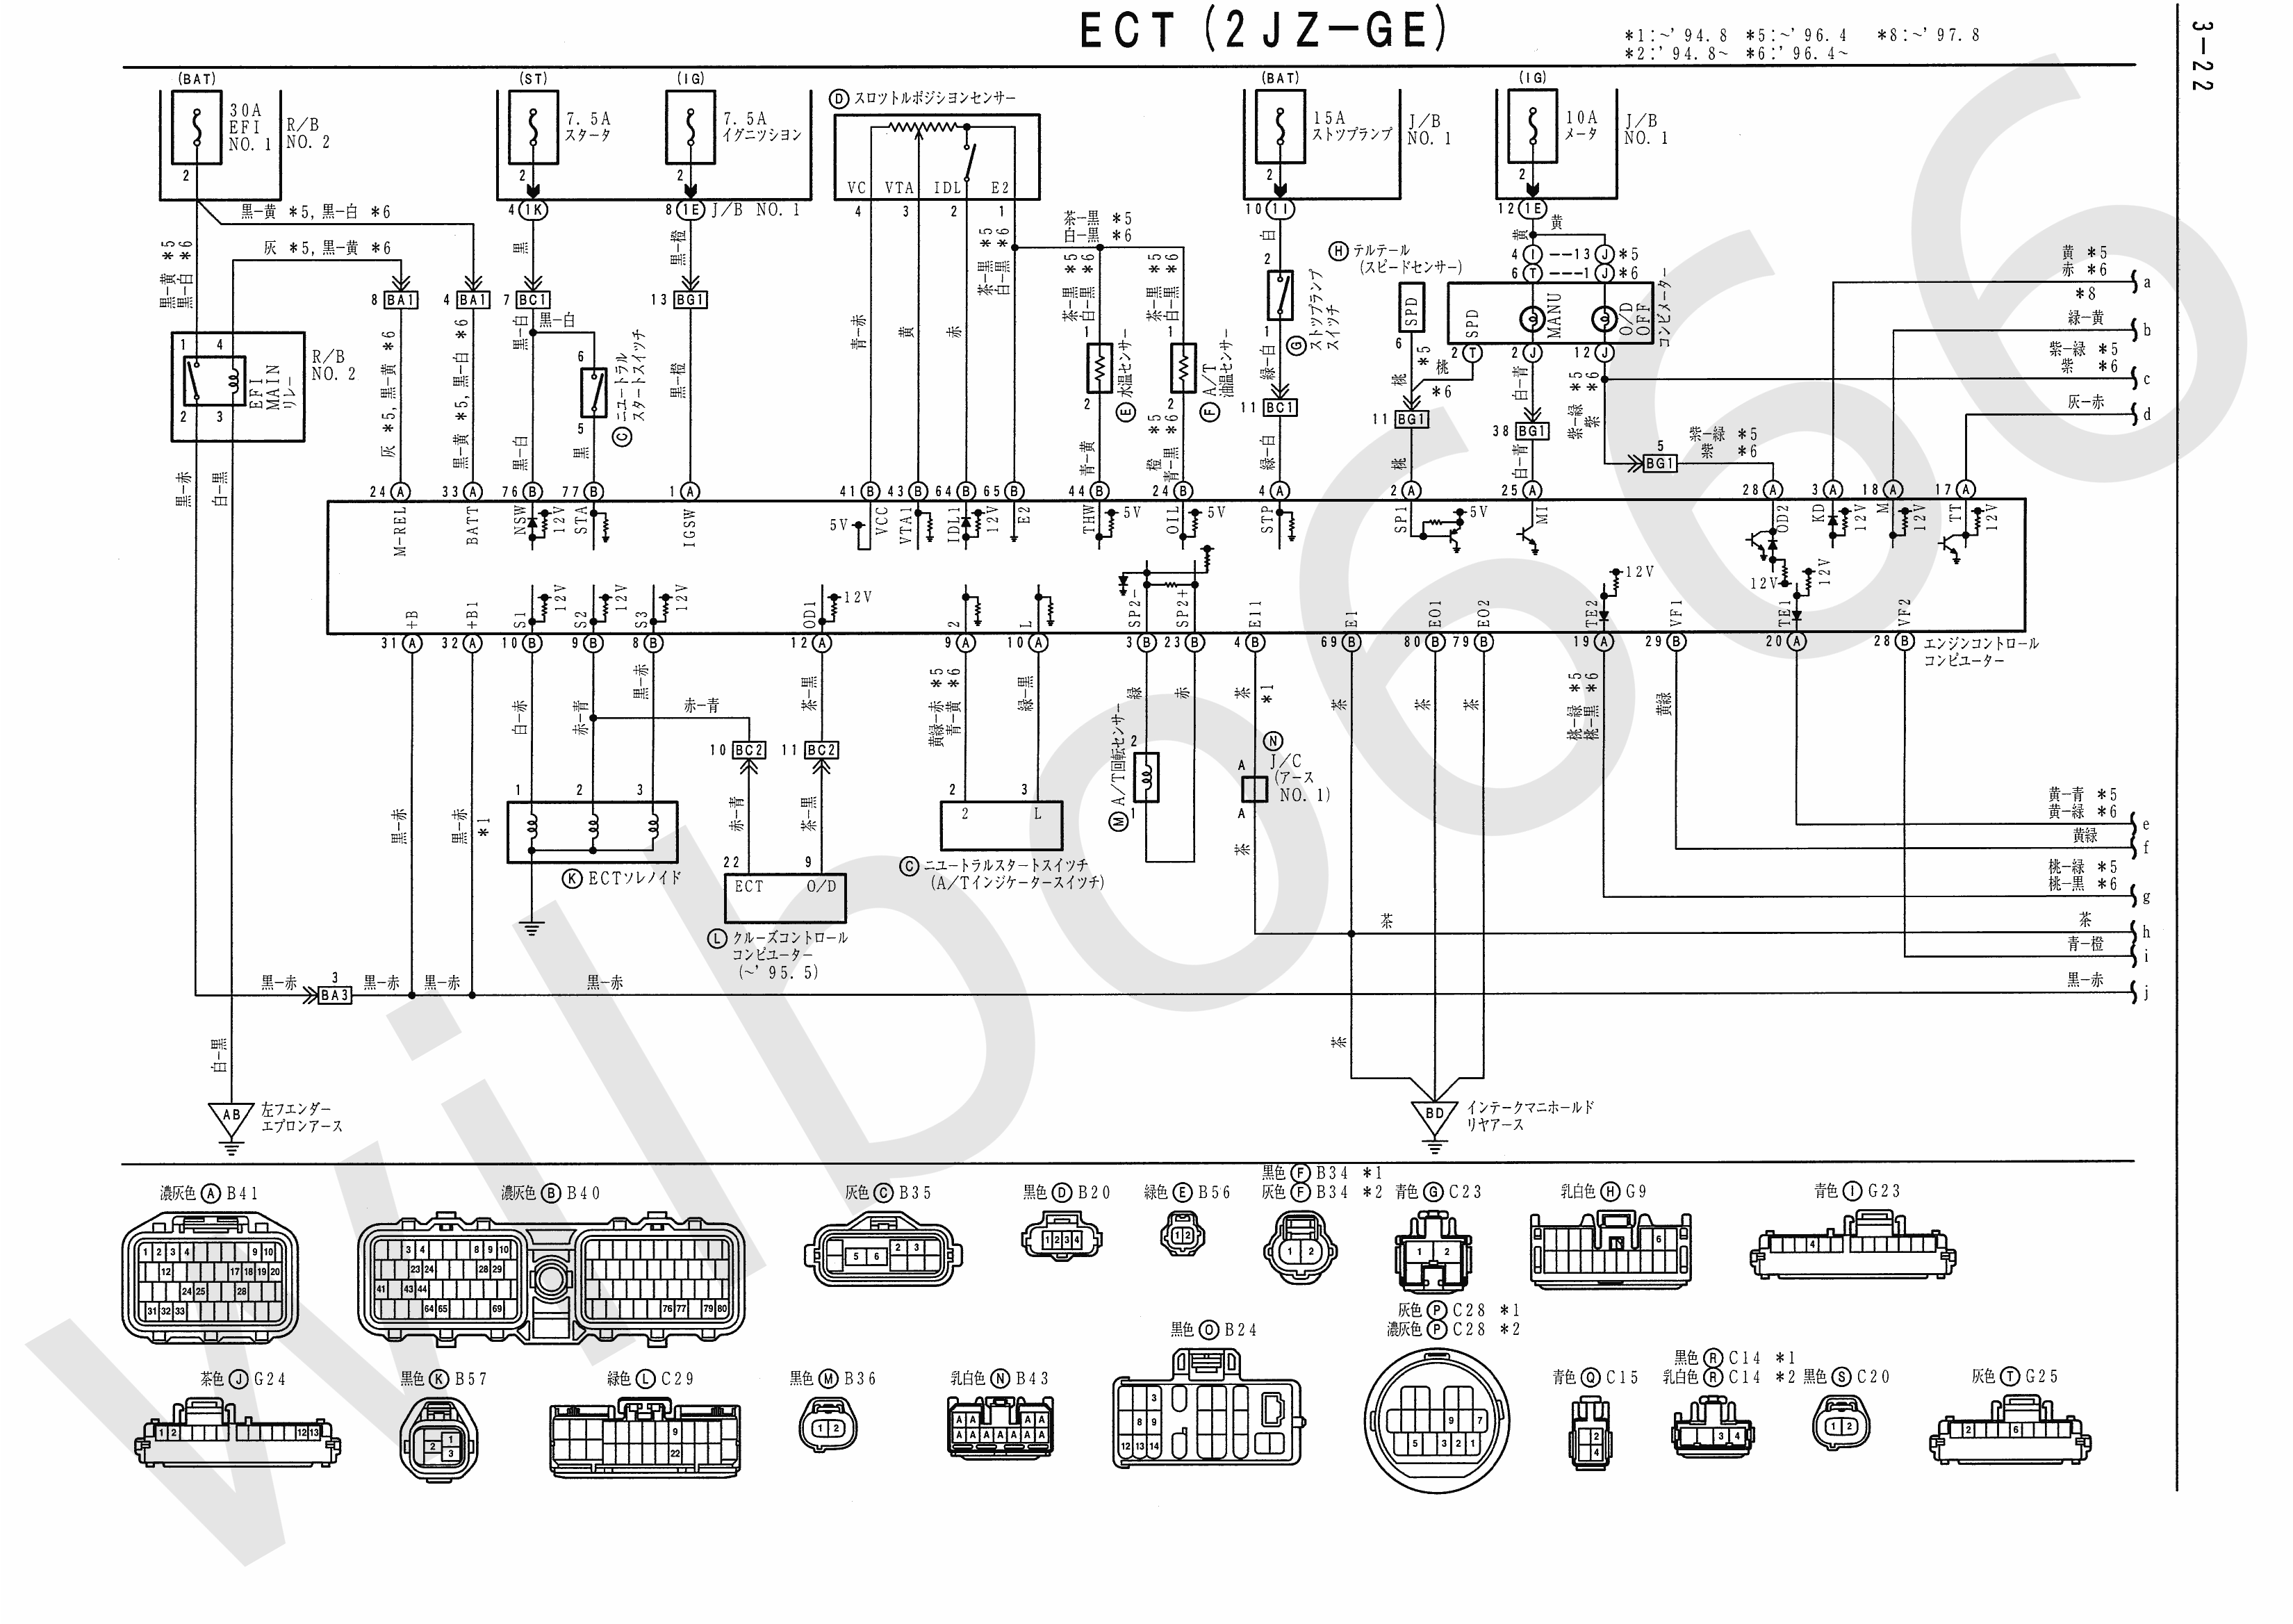 JZA80 Electrical Wiring Diagram 6742505 3 22 wilbo666 2jz ge jza80 supra engine wiring Lexus SC300 Engine at mifinder.co